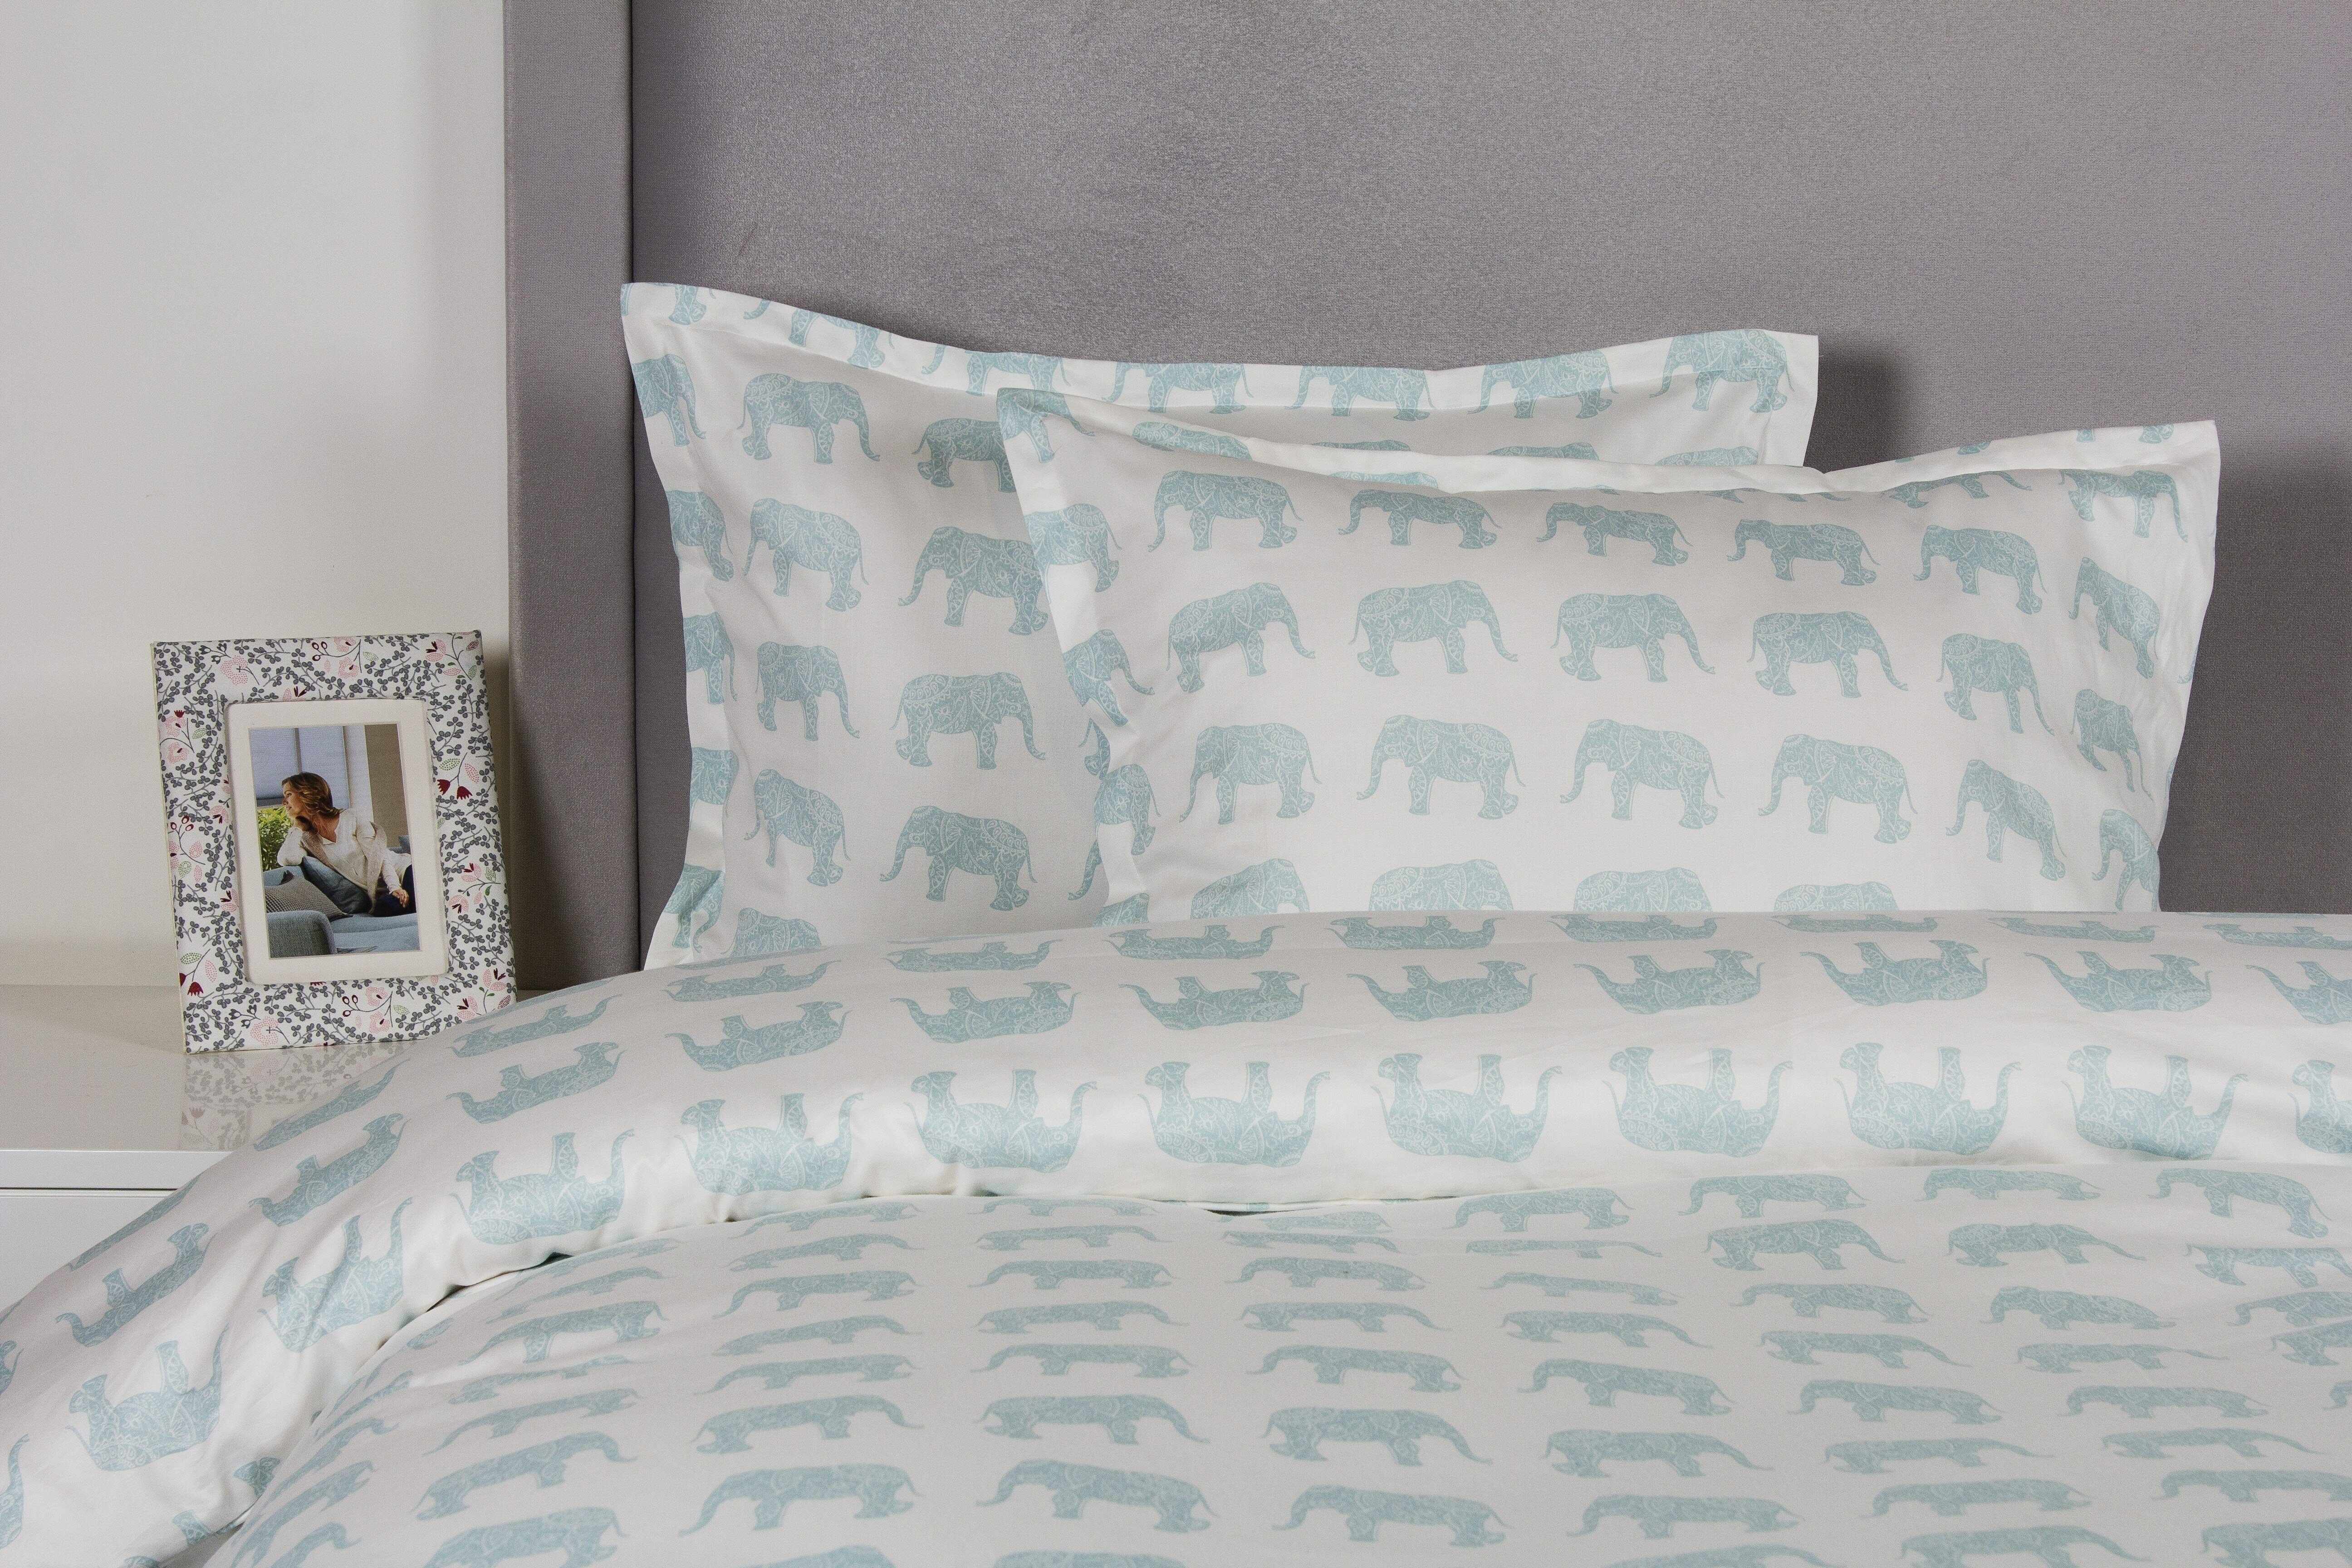 comforter elephant geo teal tassel outfitters tent floral xl twin yaella magical coral luna galaxy full bedding mini duvet zihna thinking mesa covers size ophelia raja urban medallion pinstripe modern duvets petra cover dhara etsy of uk and circle blue black devi set